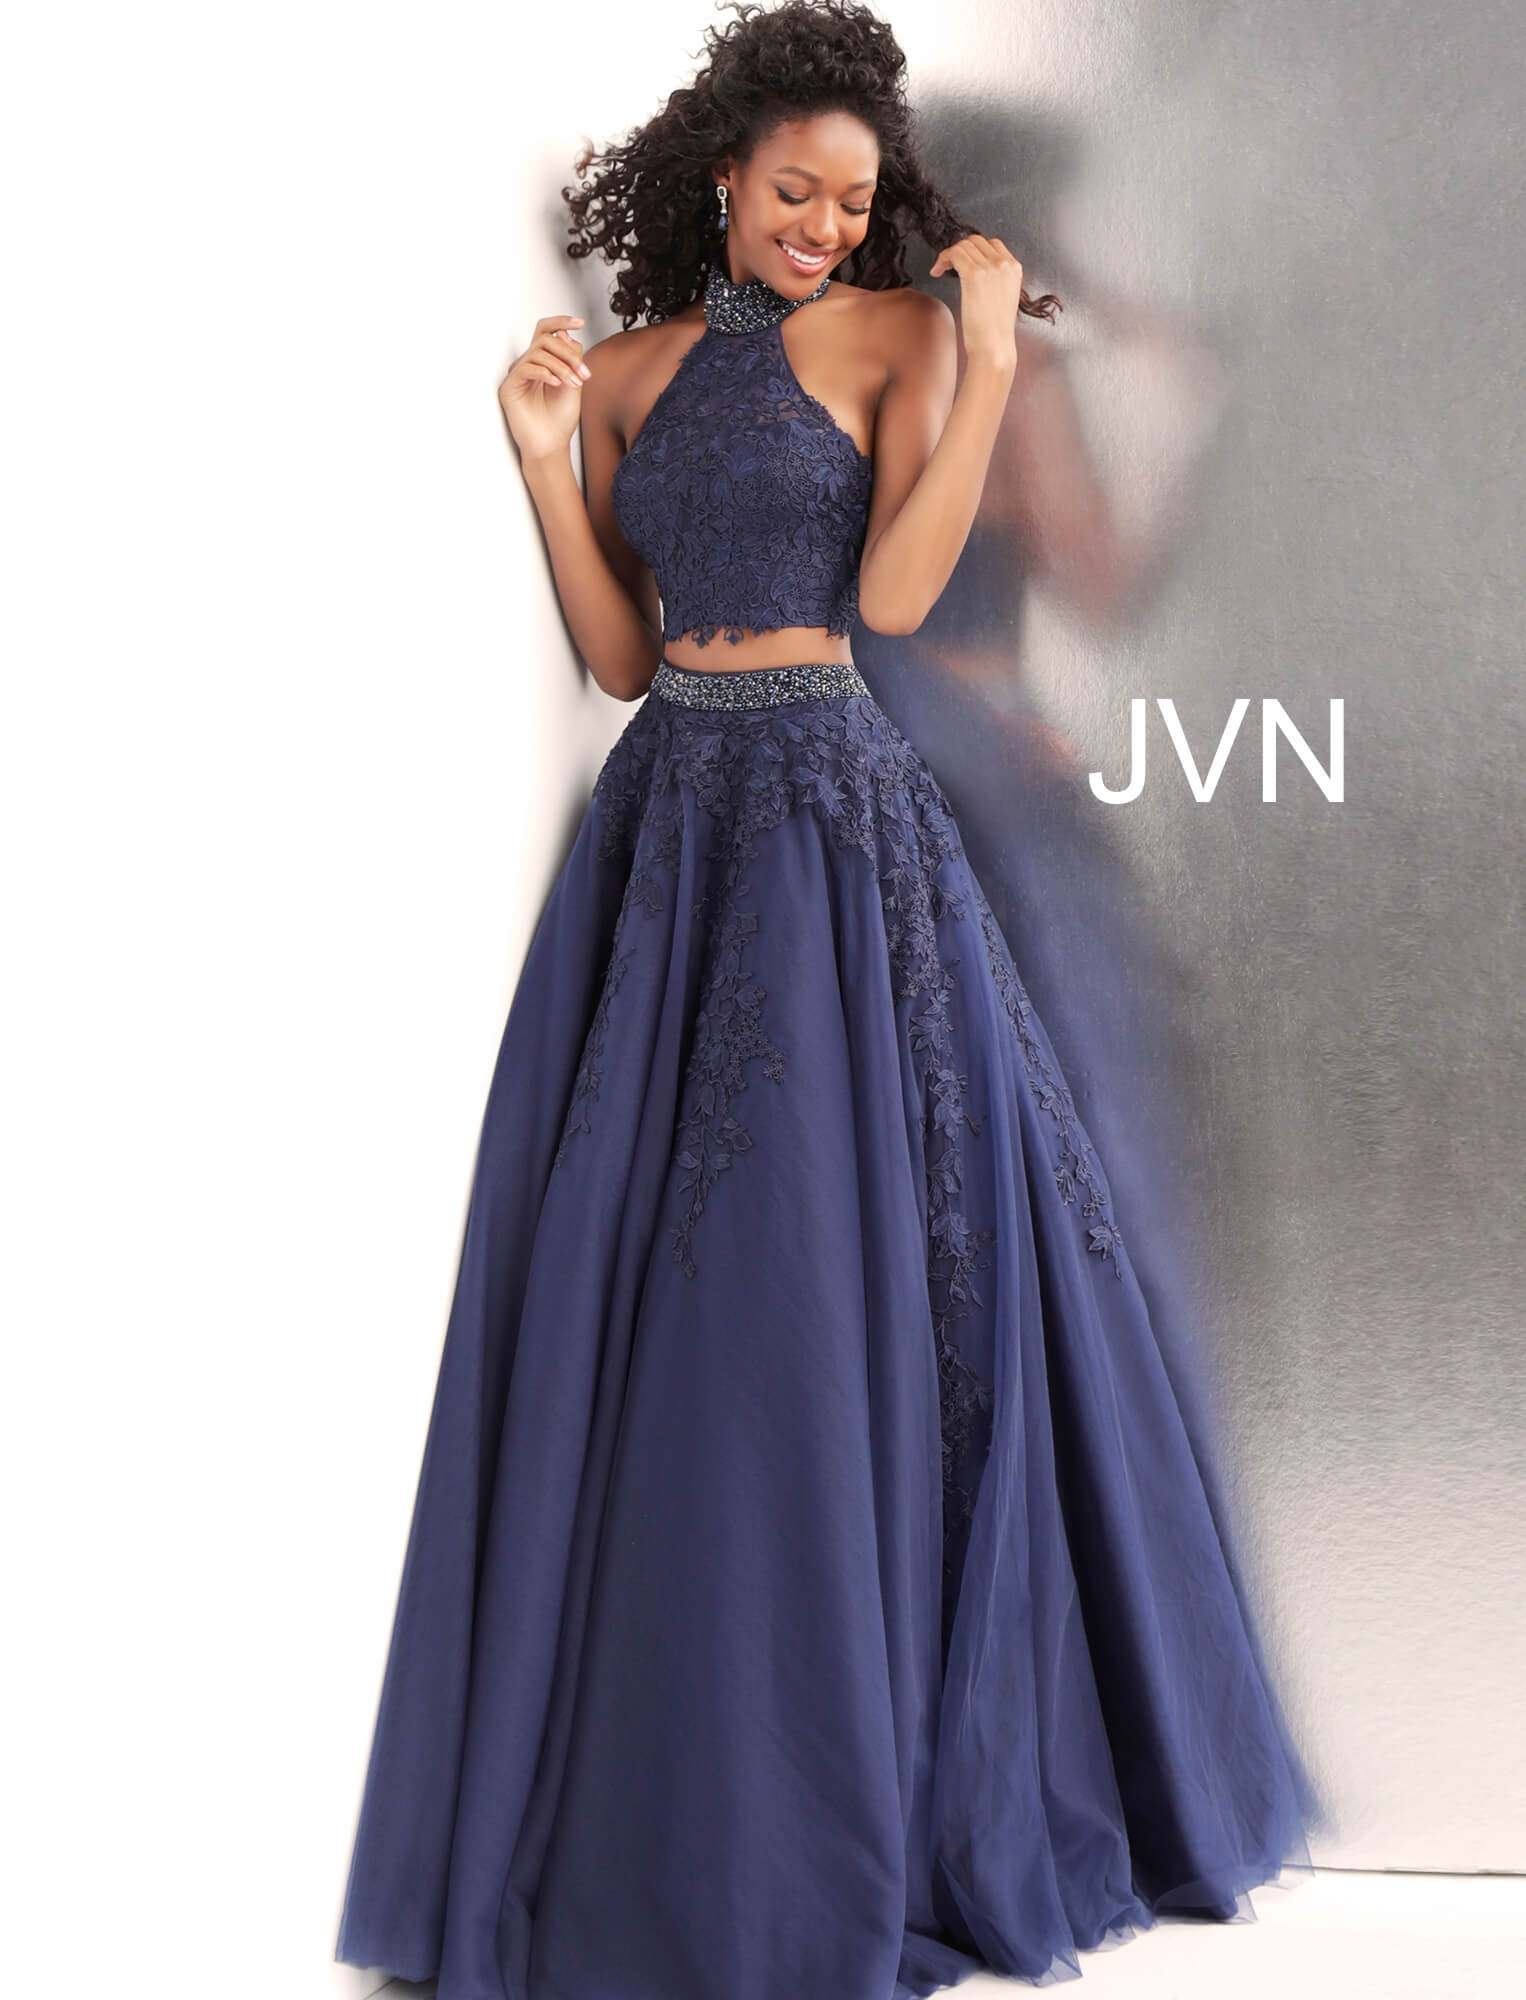 35caa0e8a0f3 Jovani jvn68259 - High Neckline 2 Piece Ball Gown Dress